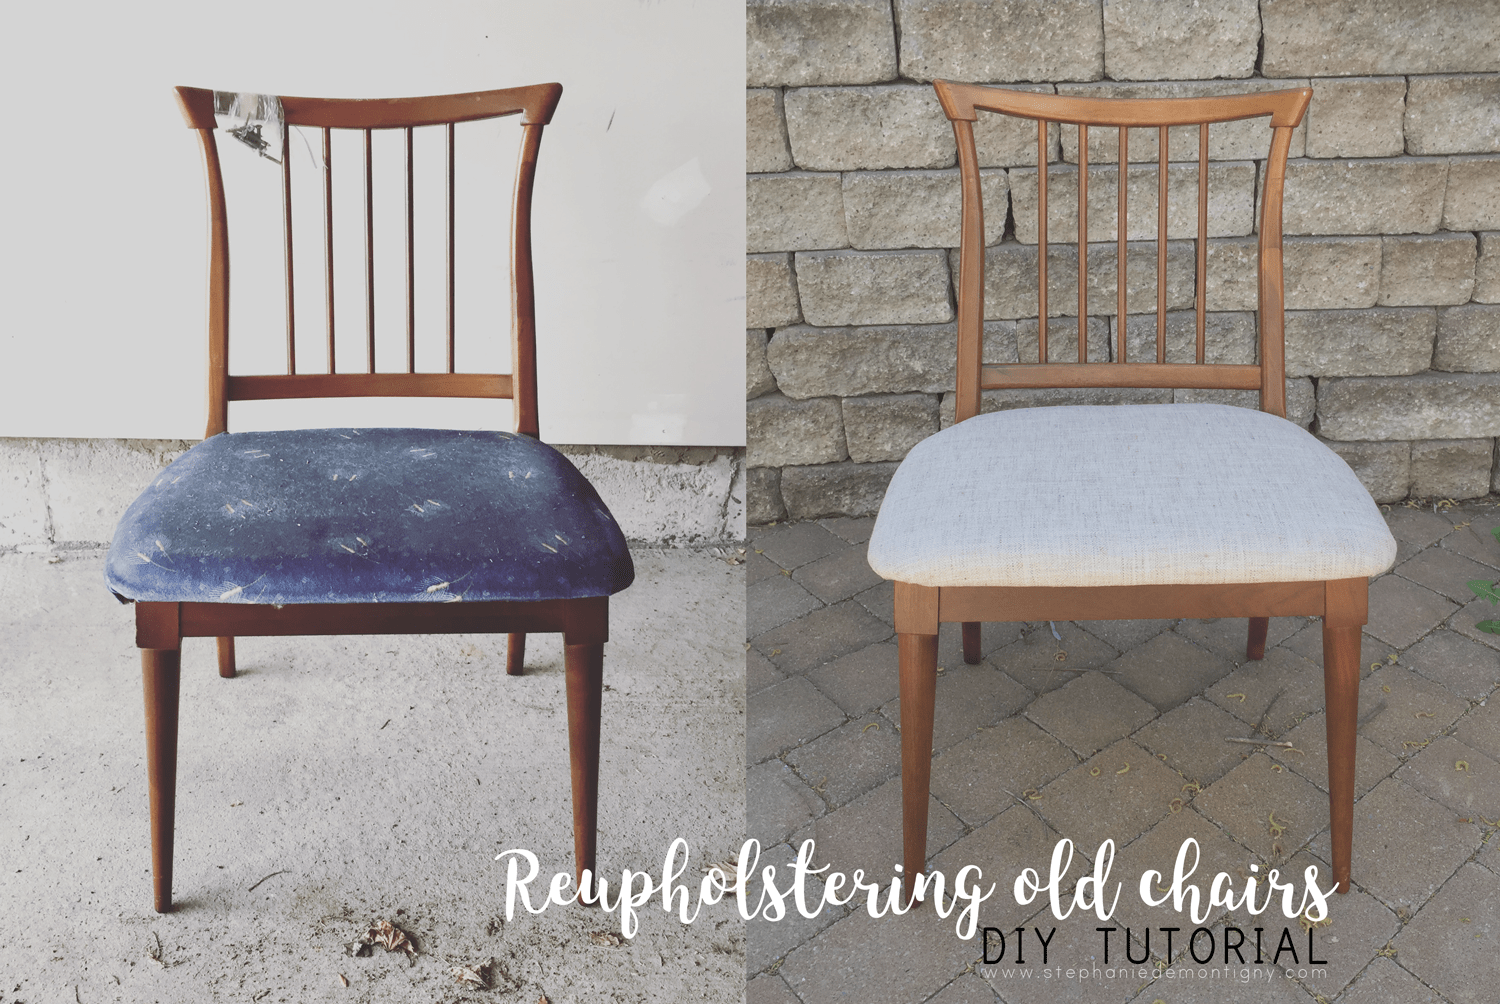 Reupholstering Vintage Chairs DIY Tutorial Antique To Modern